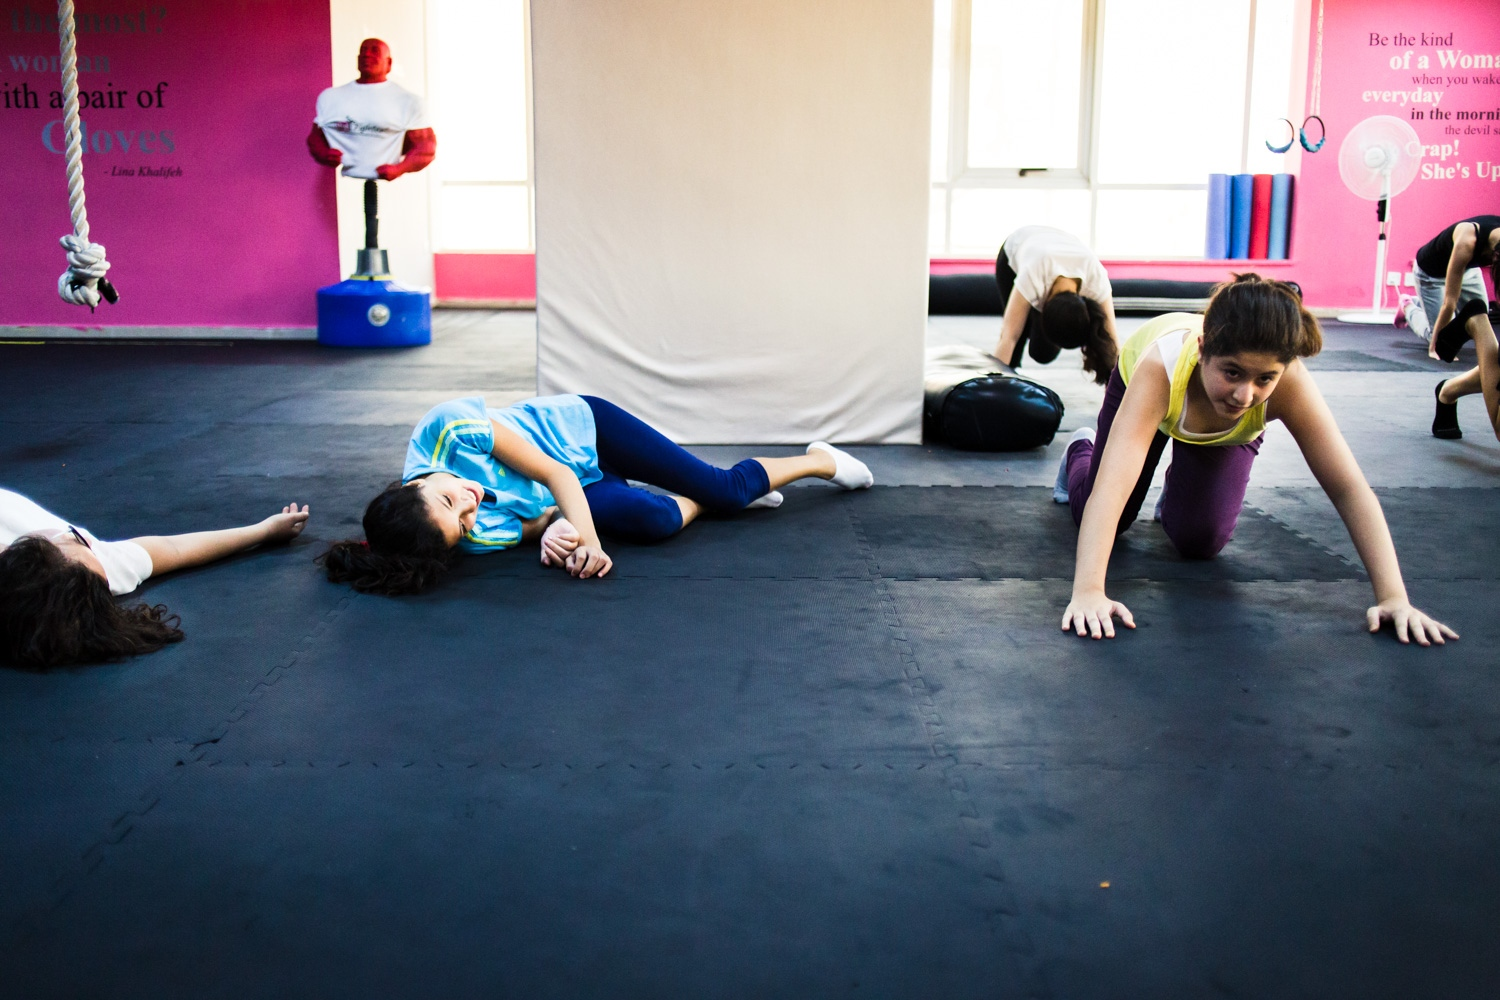 Reem Habib collapses on the floor, laughing, after holding the plank position during a self defense class in Amman, Jordan, on August 21, 2015. The She Fighter studio was founded by Lina Khalifeh, and offers self defense classes to young women to protect against harassment.